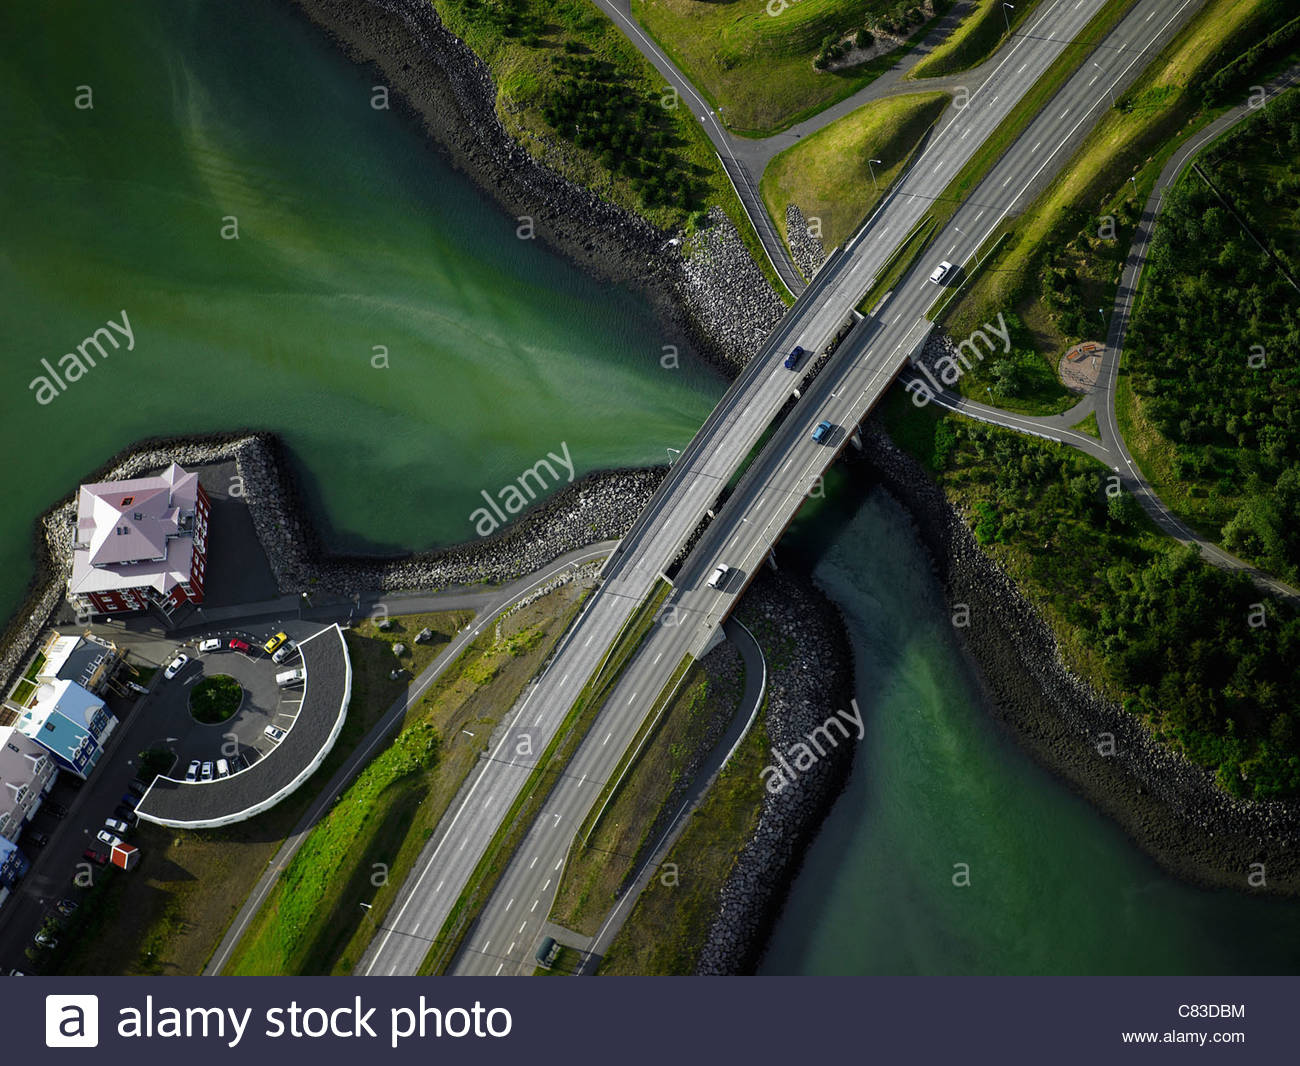 Aerial view of paved bridge over river - Stock Image